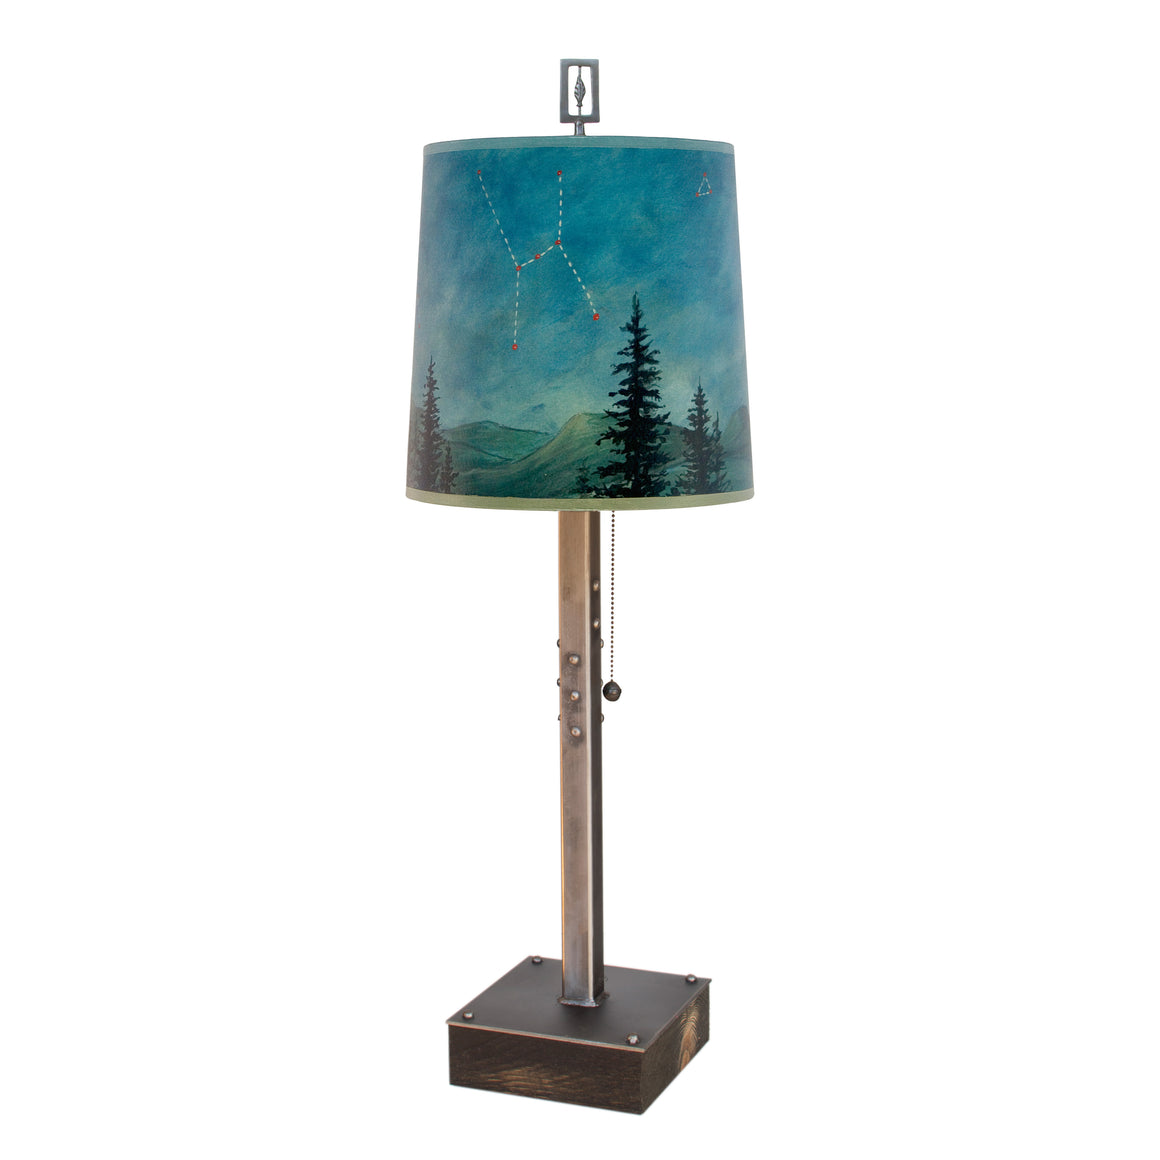 Steel Table Lamp on Wood with Medium Drum Shade in Midnight Sky